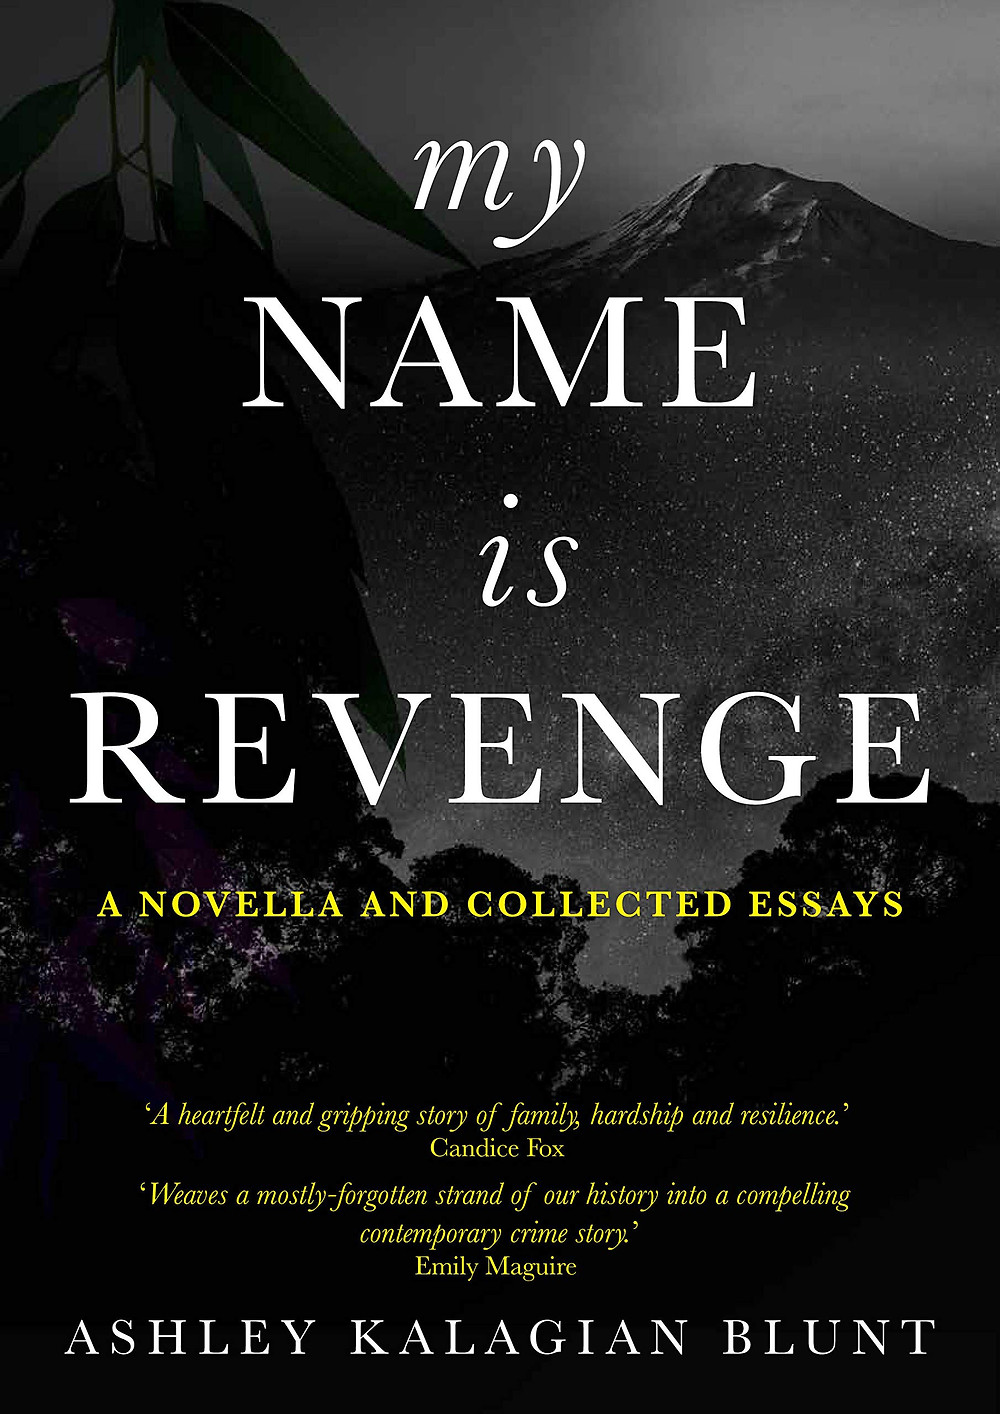 My Name Is Revenge: A Novella and Reflective Essay By Ashley Kalagian Blunt